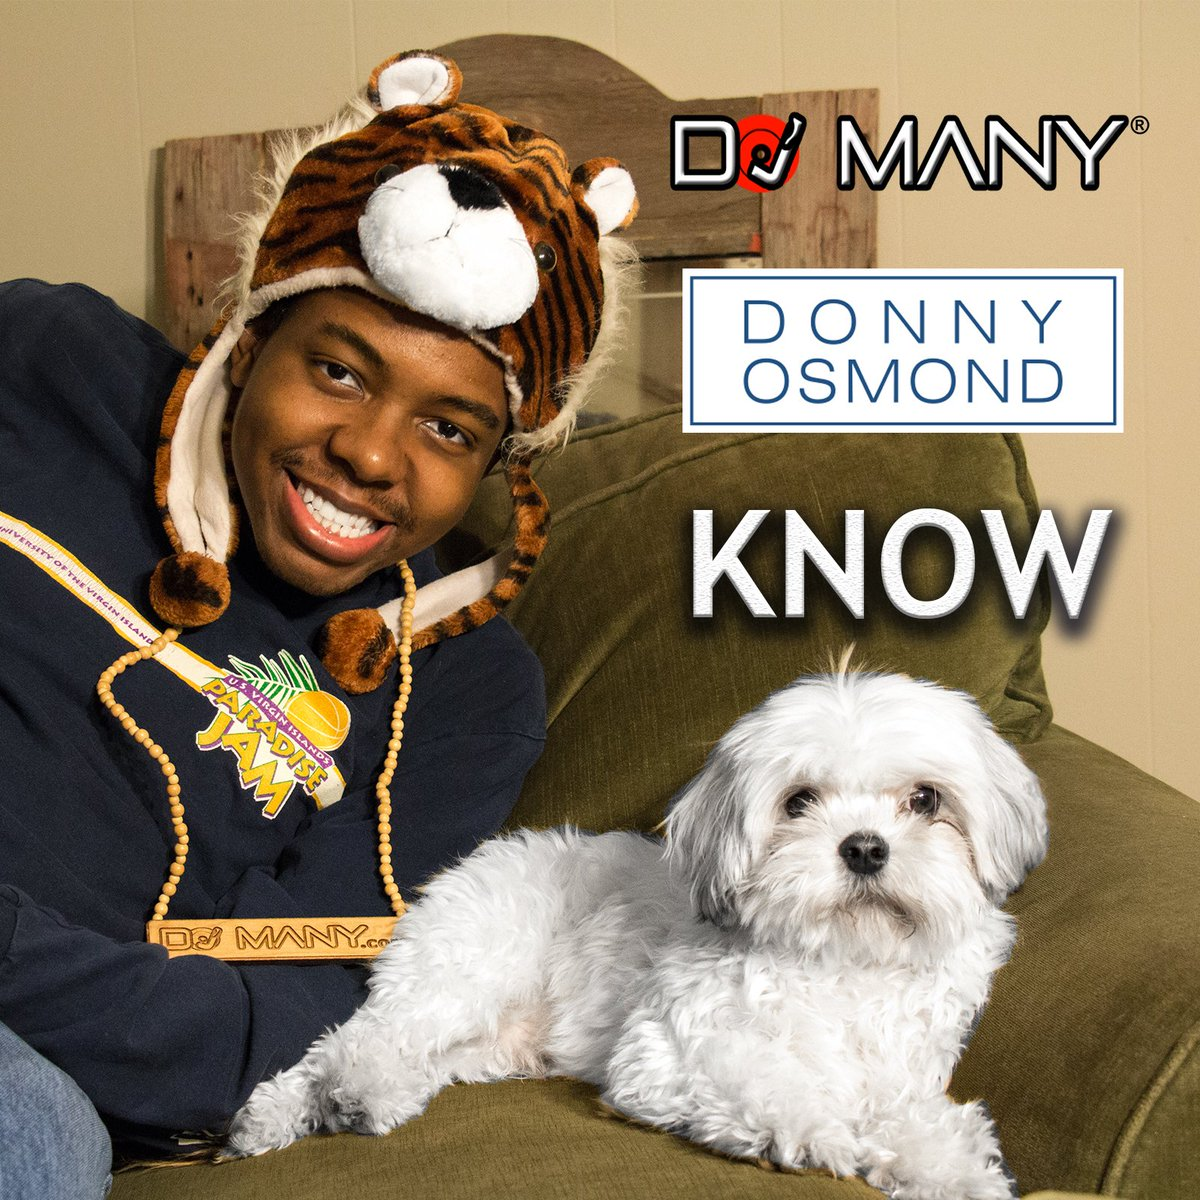 SURPRISE! My New Song With Pop Legend @donnyosmond Is Now Out! https://t.co/9sJcdE2JjW Thank You Donny. -DJ Many https://t.co/1j3CgsSai9